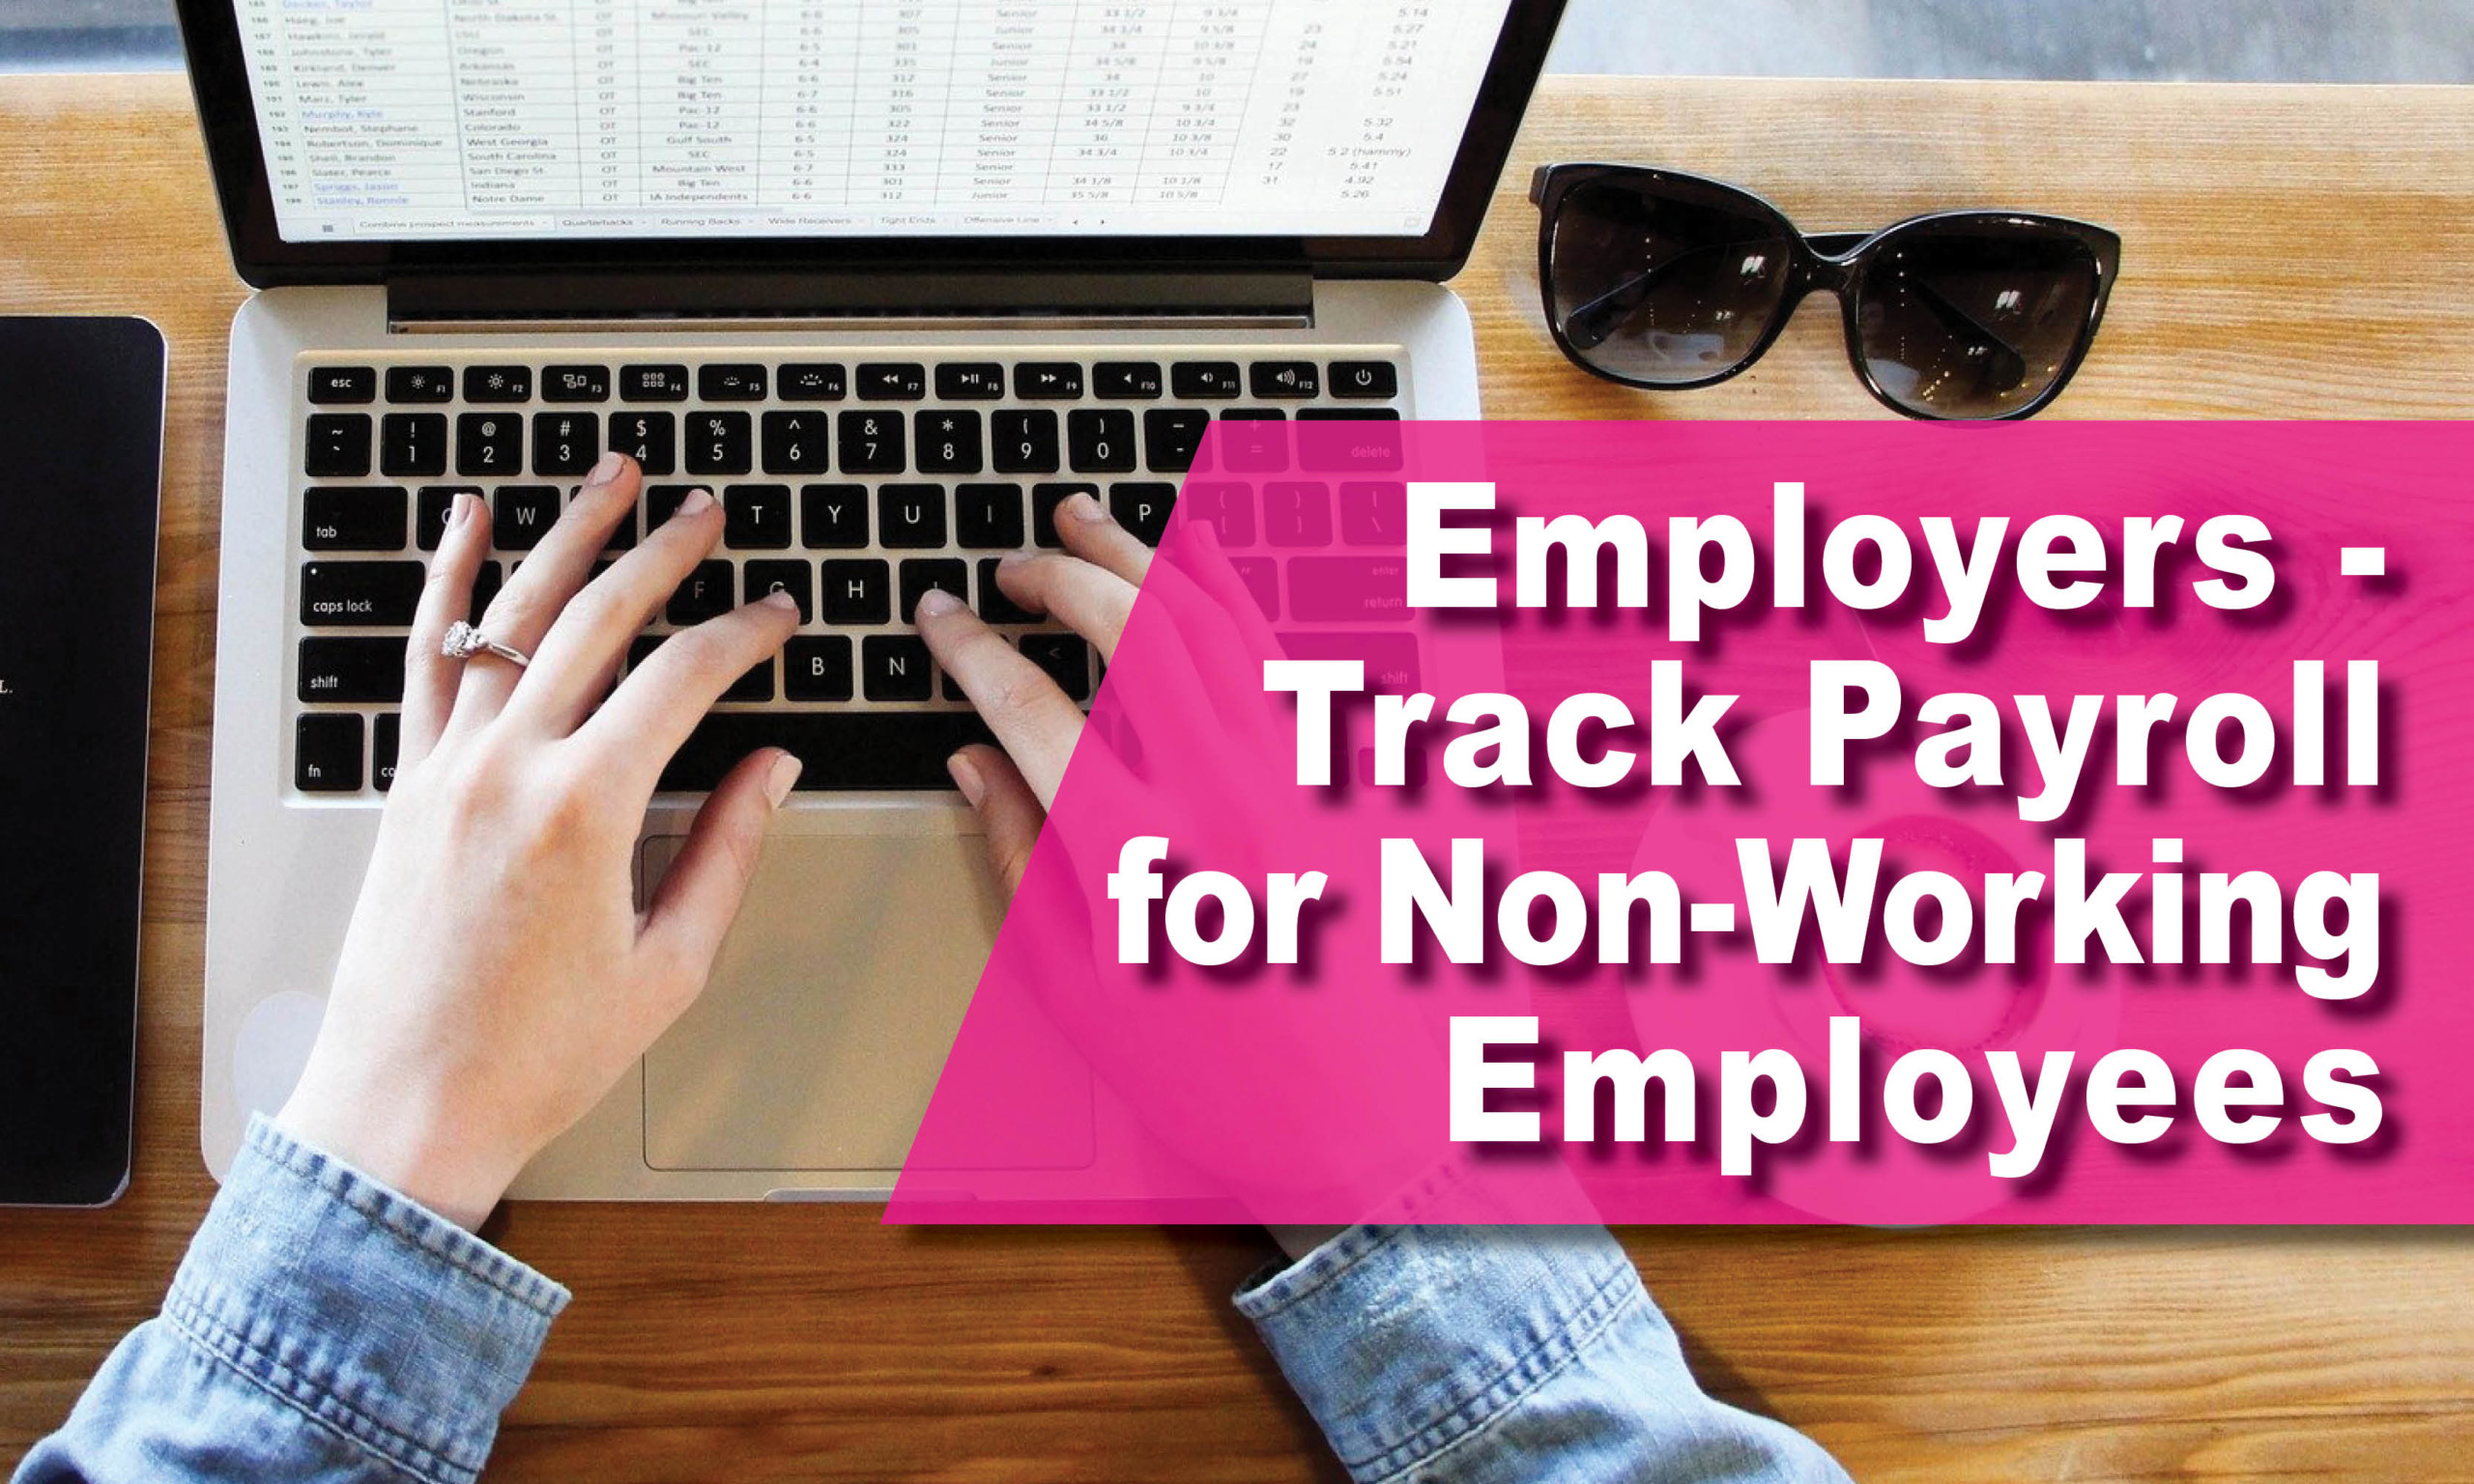 Employers - Track Payroll for Non-Working Employees